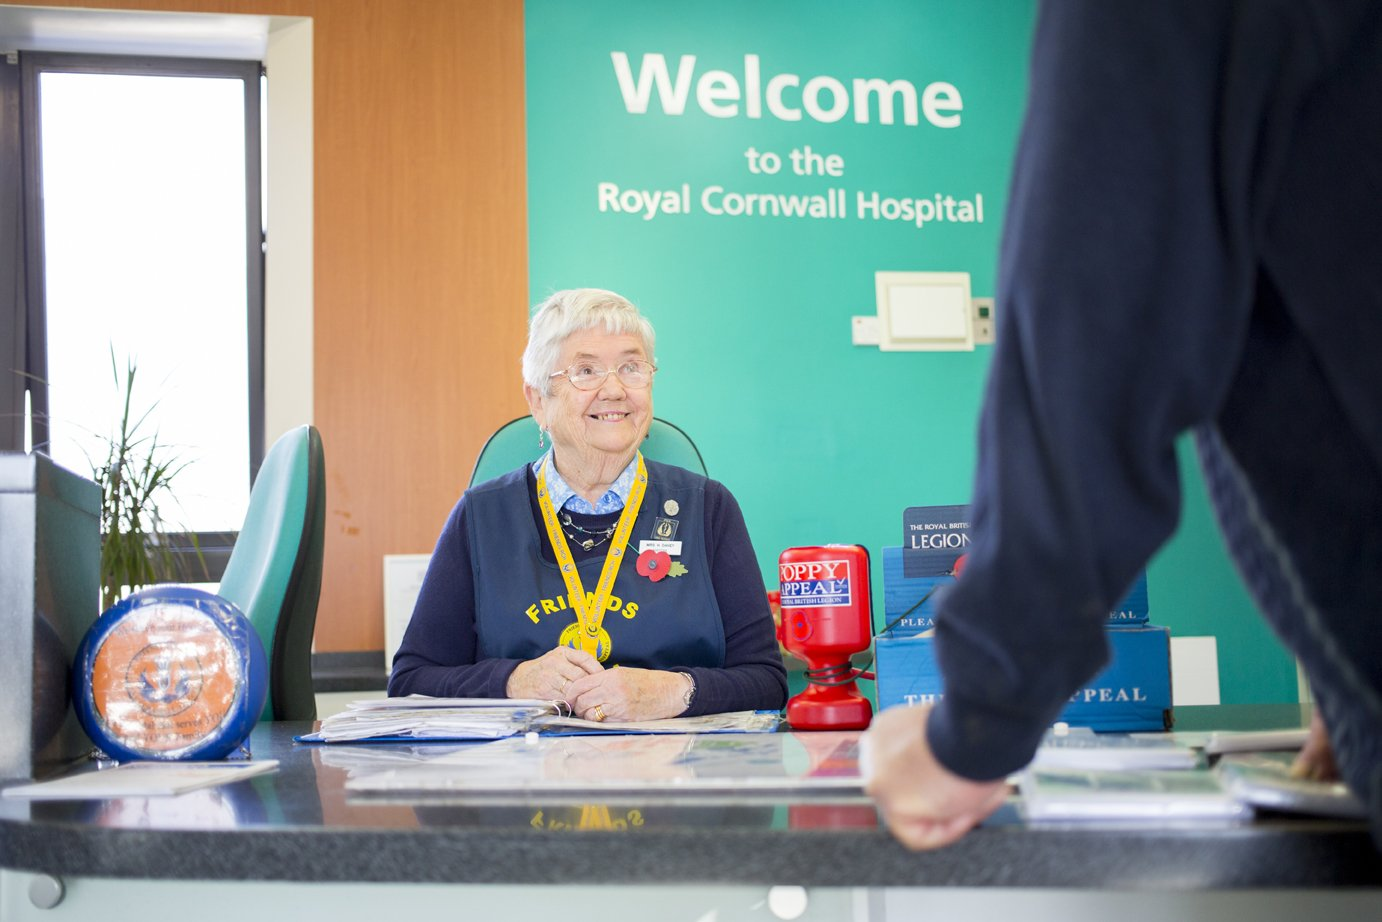 Royal Cornwall Hospital Friends Volunteer on reception